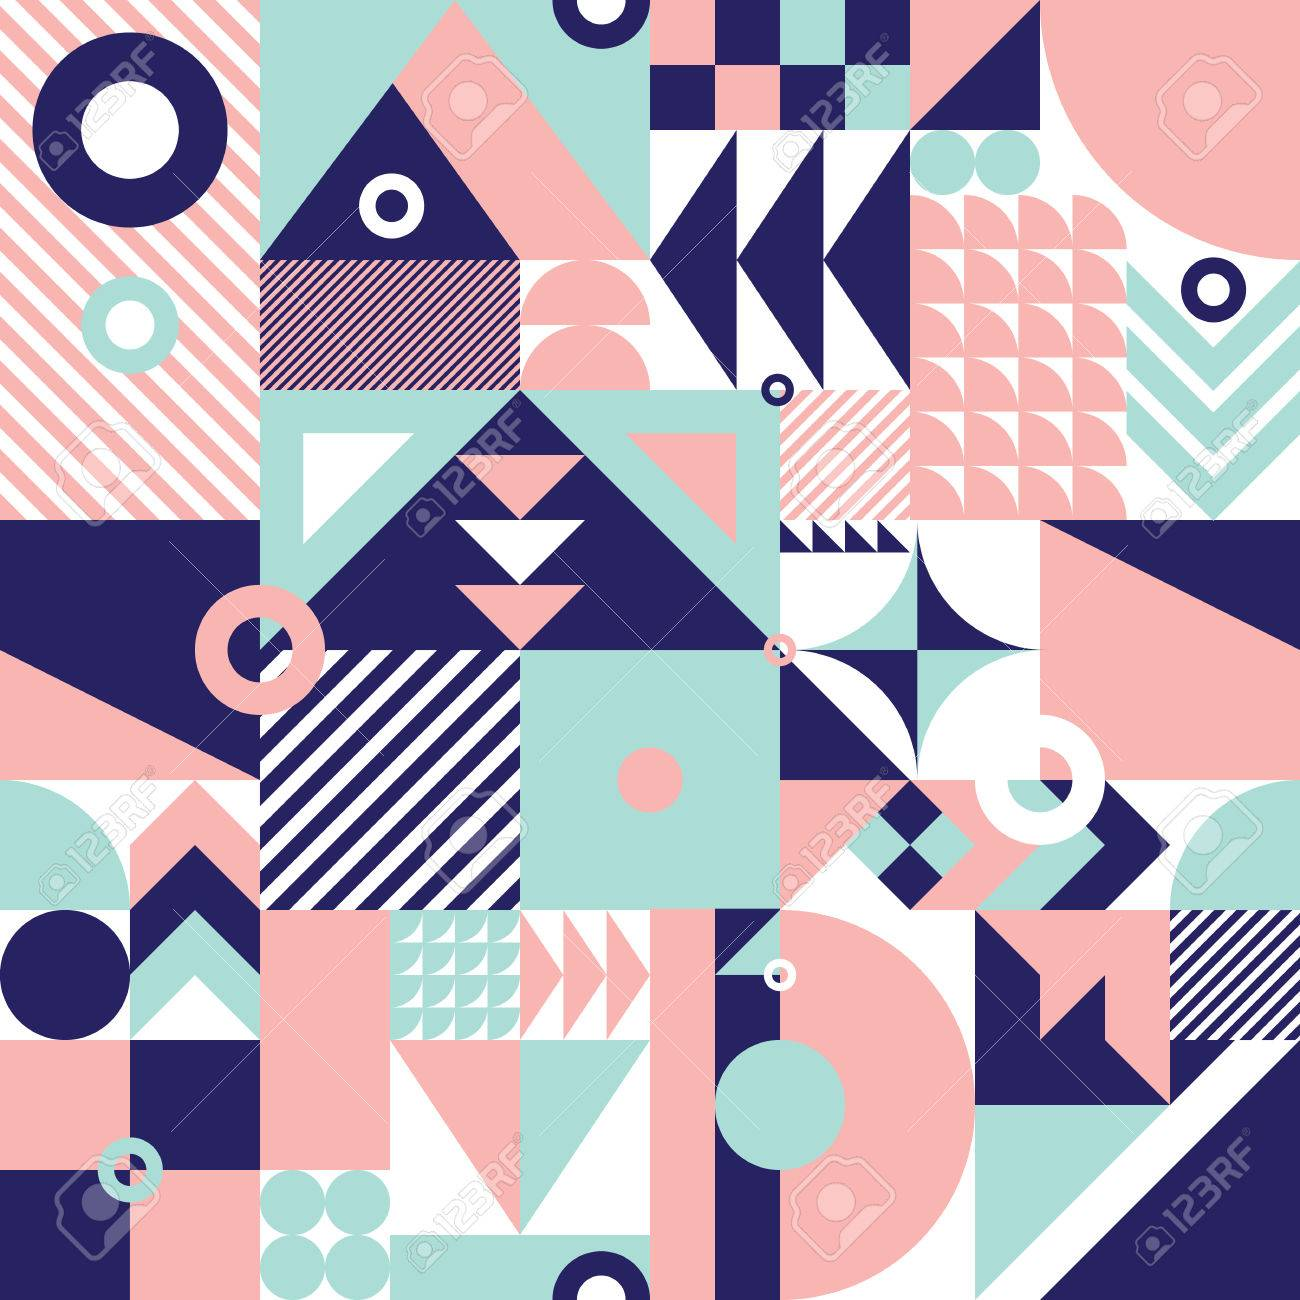 Contemporary geometric mosaic seamless pattern with a vibrant color scheme, repeat background with rich and modern shapes, surface pattern design for web and print - 67248117